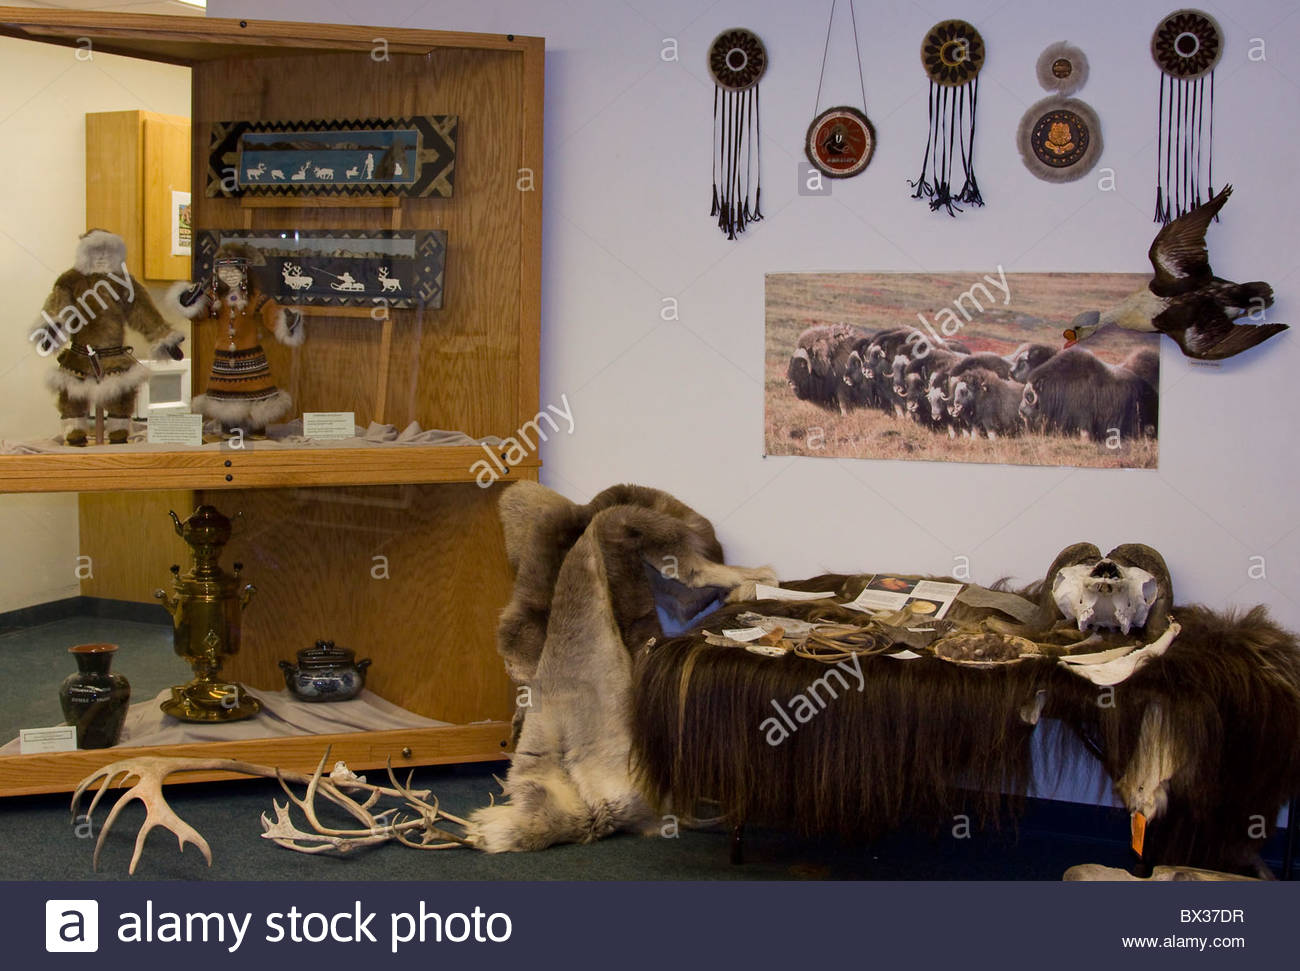 Alaska. Display illustrating Beringia art, culture and animals from the Russian influence to current wildlife such - Stock Image